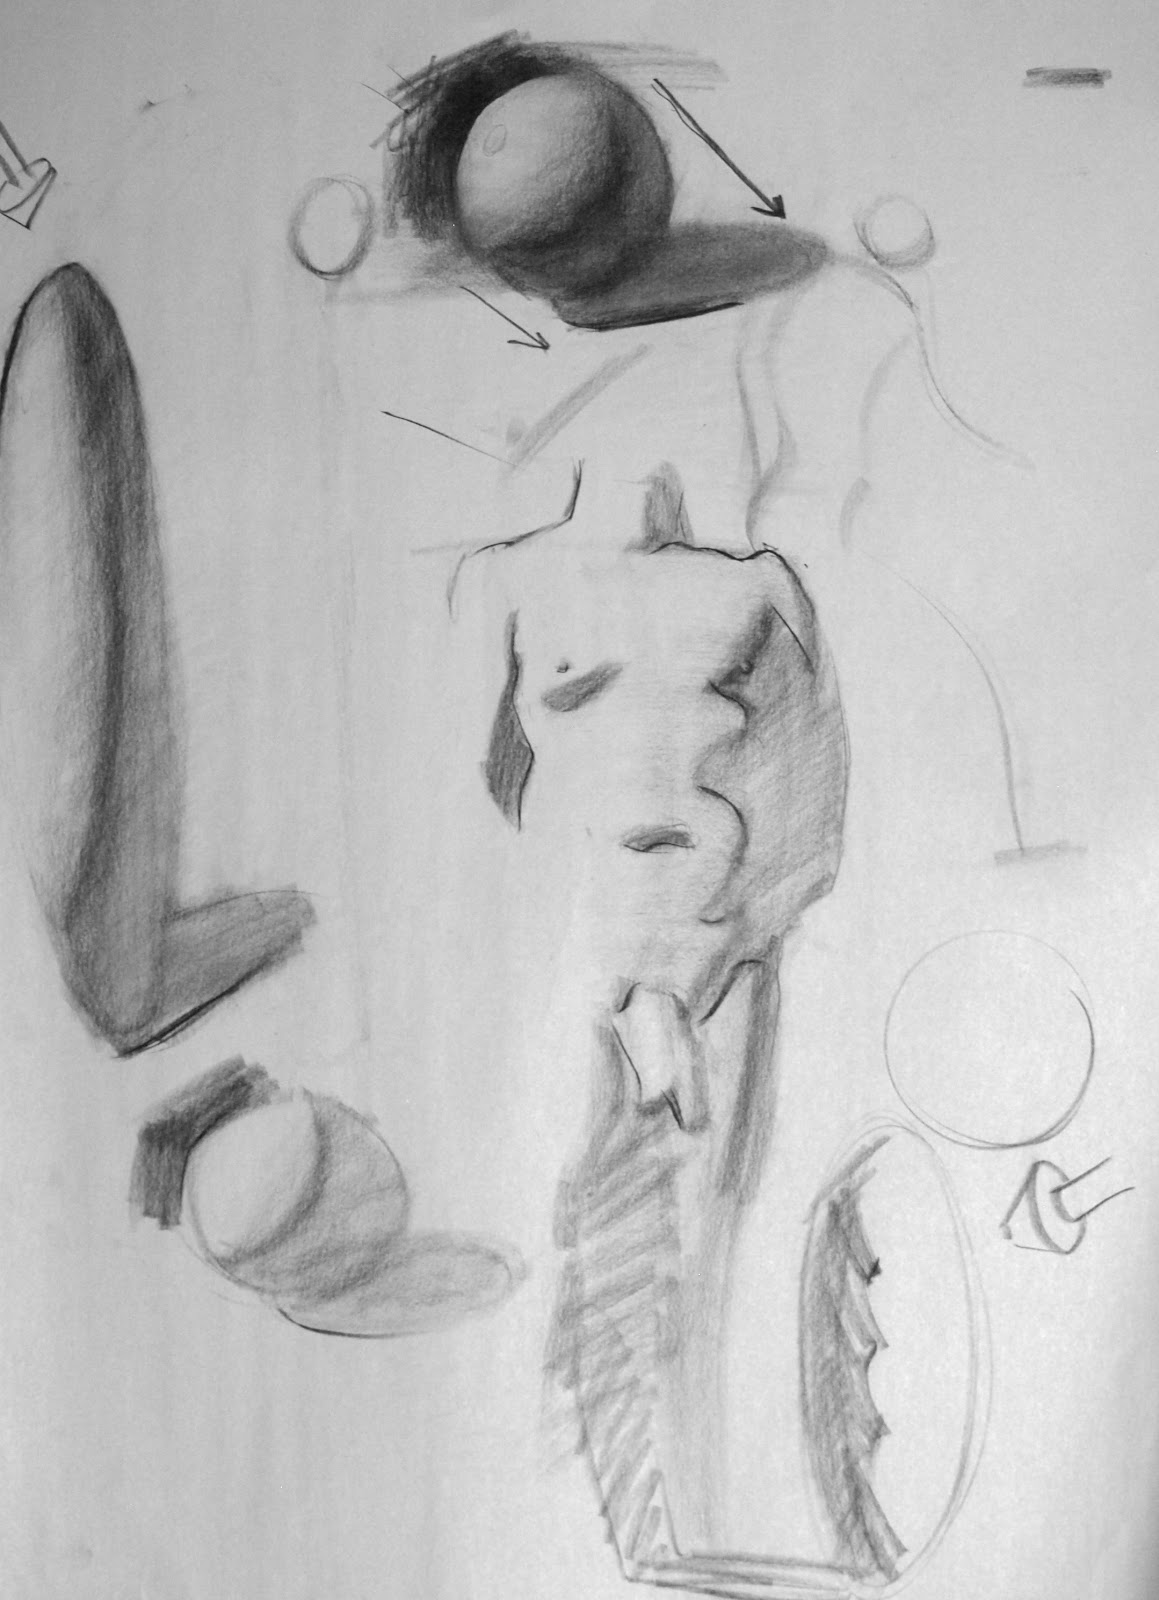 Drawn figurine shadow The applying Draw the everything!